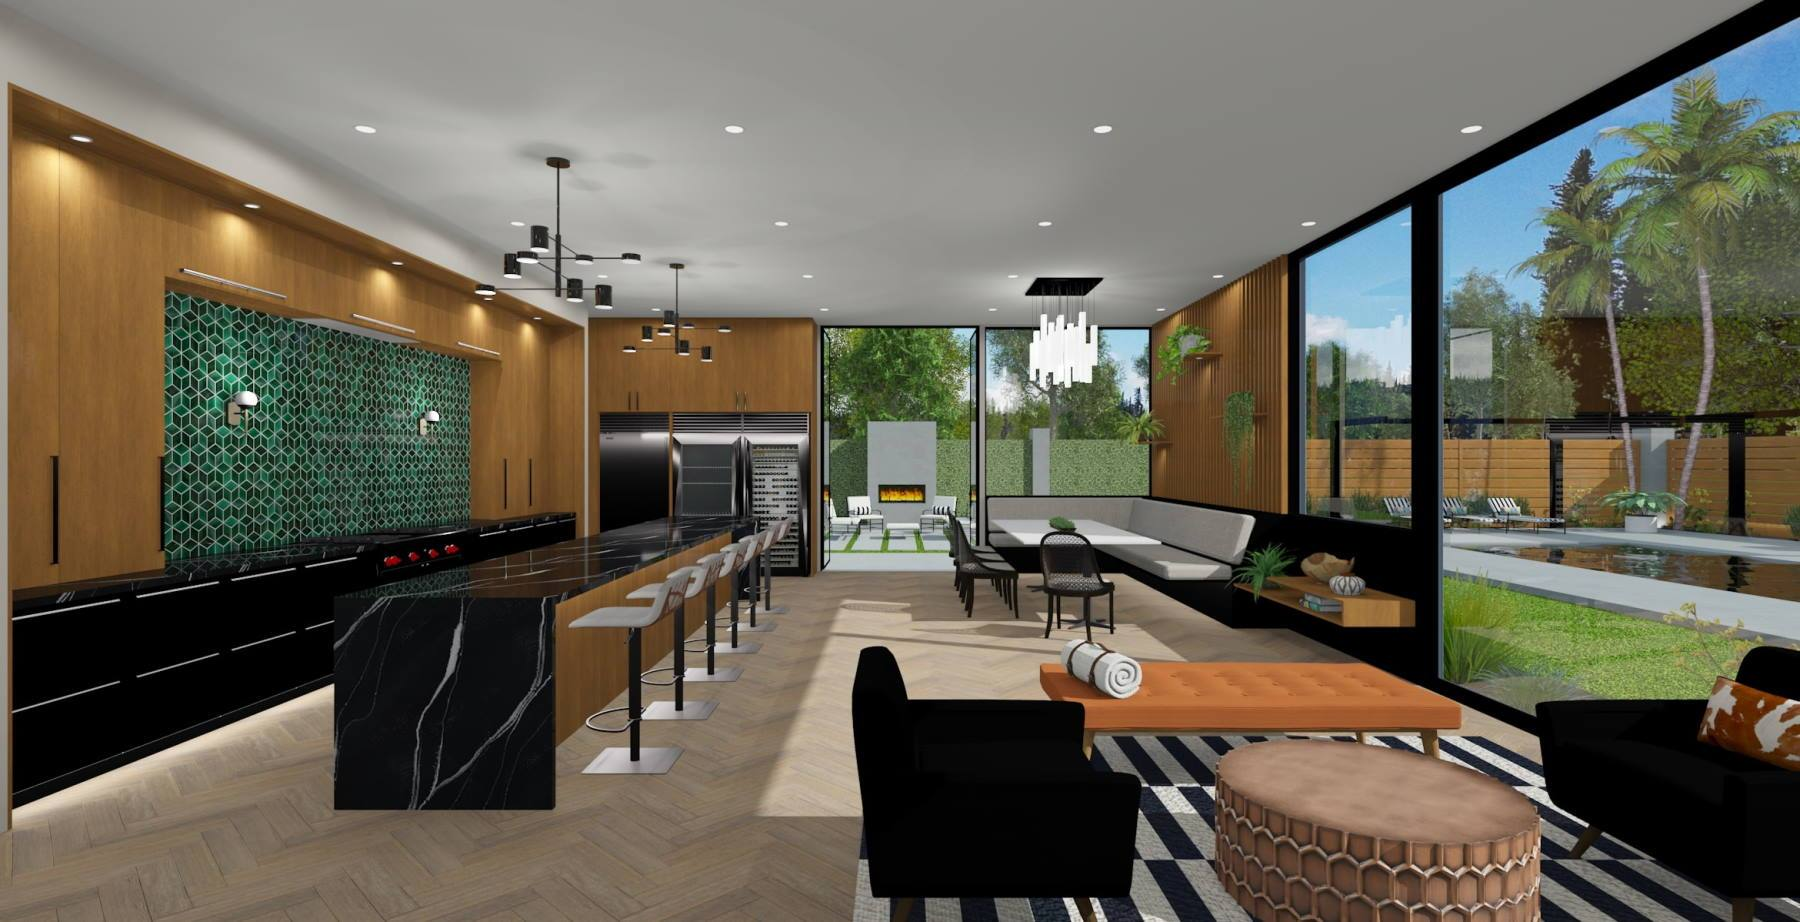 Modern and comfortable design with extra seating at the kitchen island and large open windows for optimal lighting